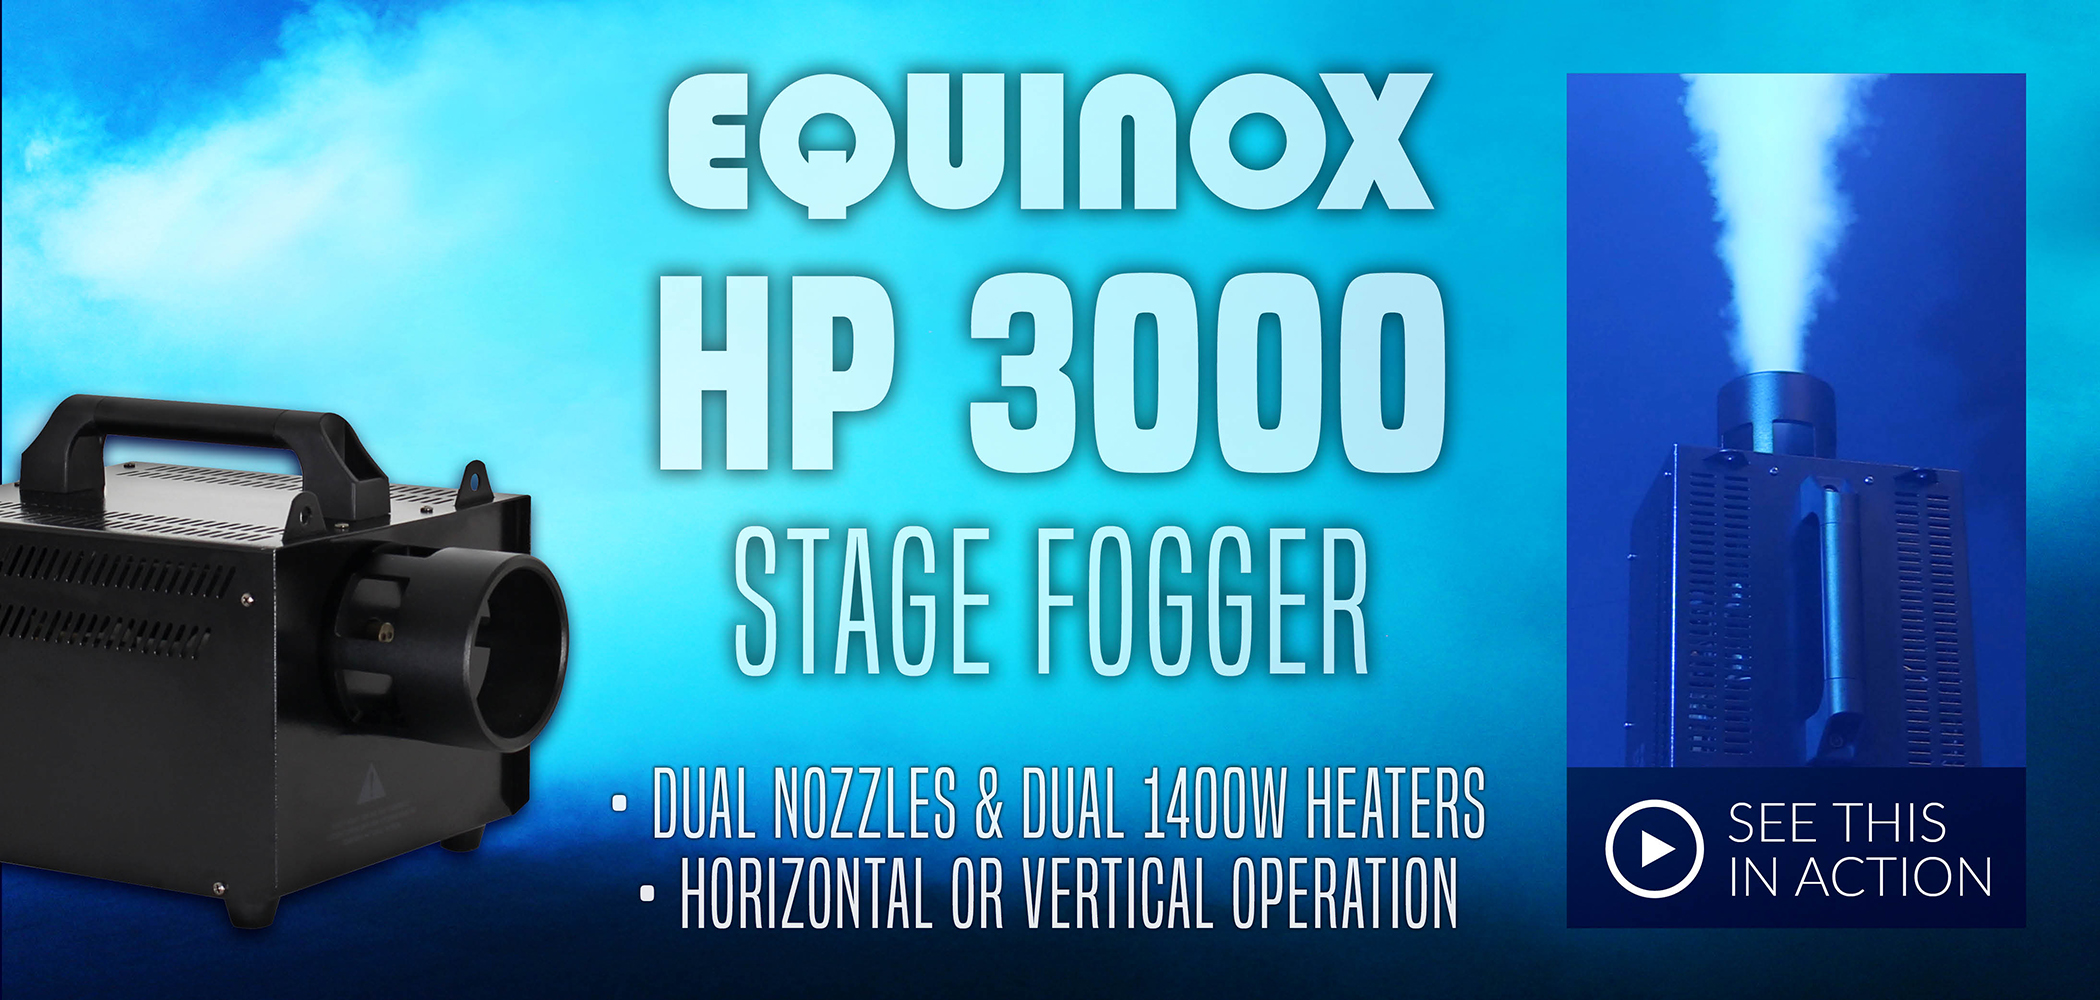 HP3000 Stage Fogger